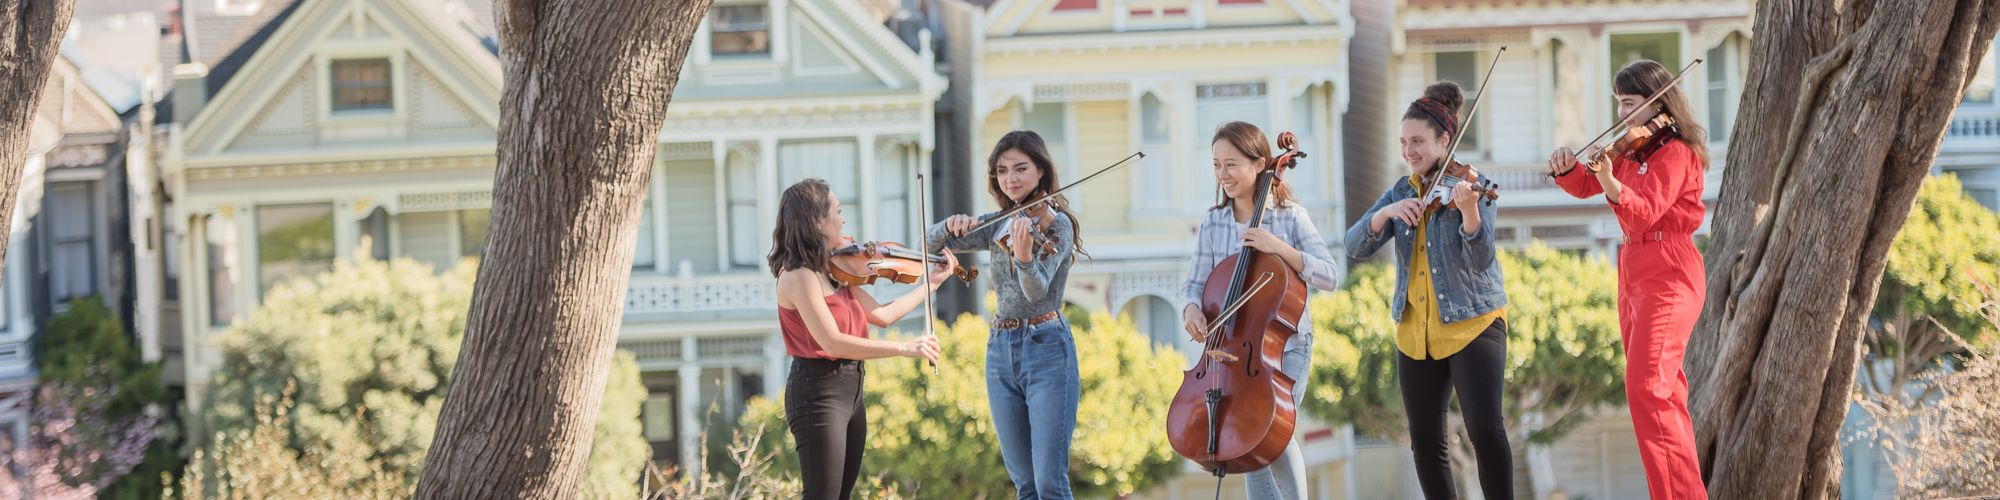 SFCM students playing strings at the painted ladies